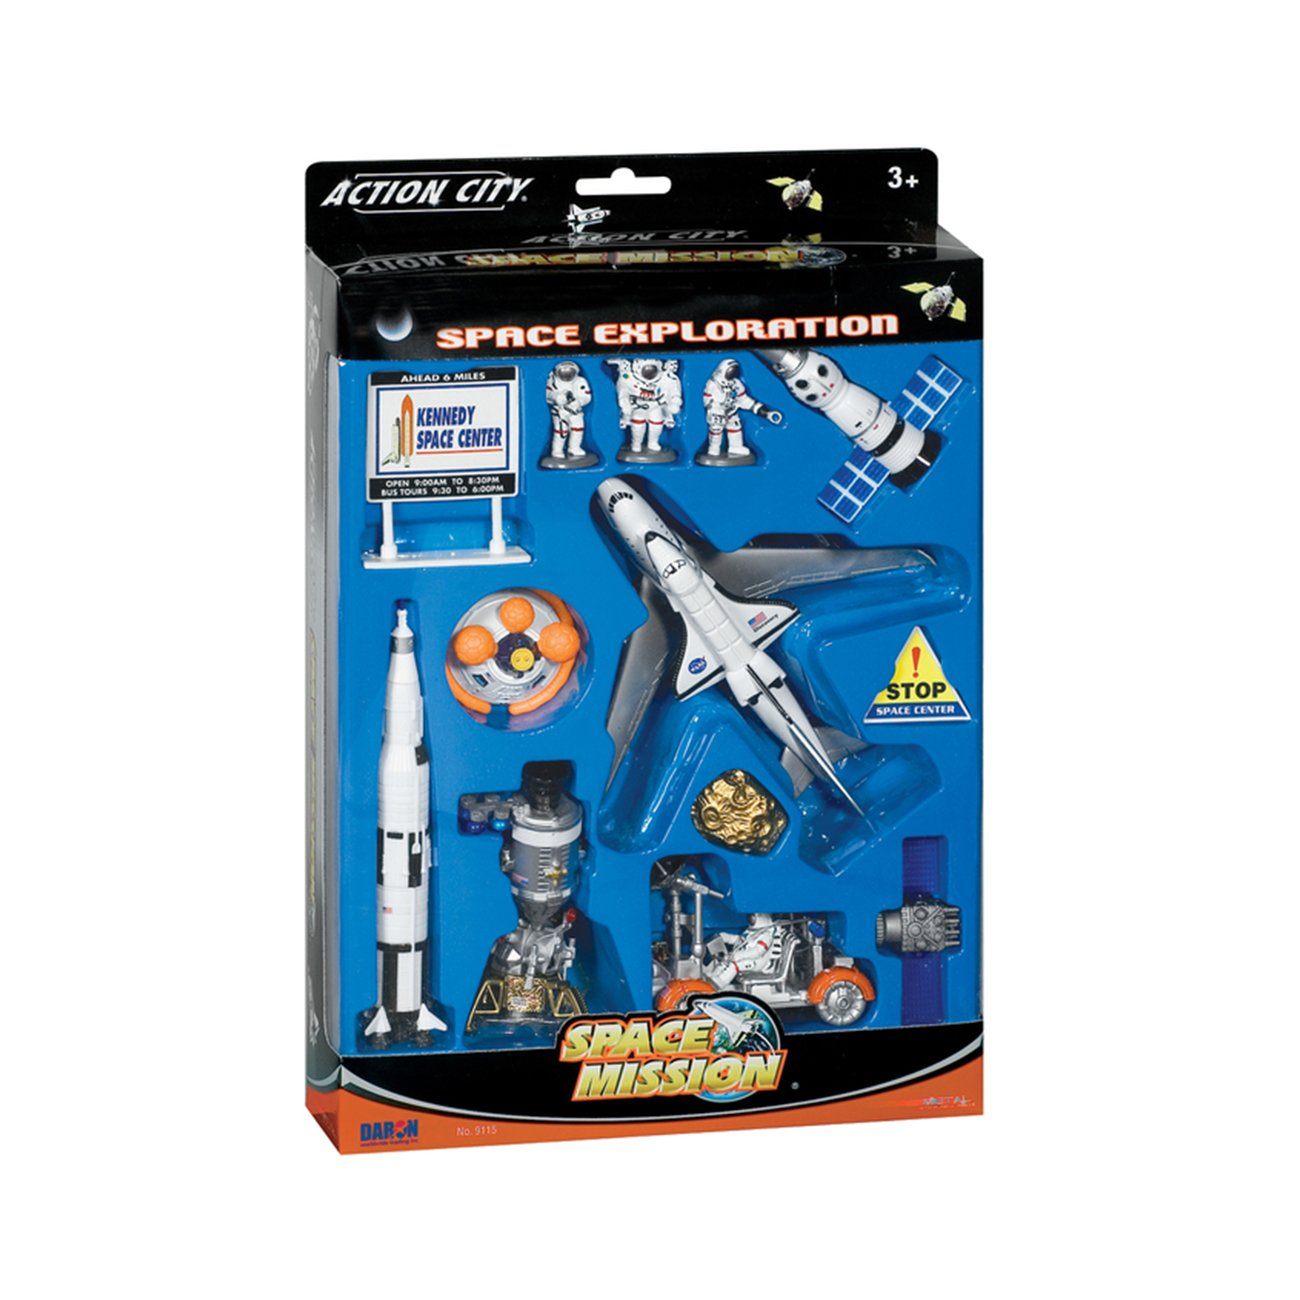 Lunar Explorer Playset